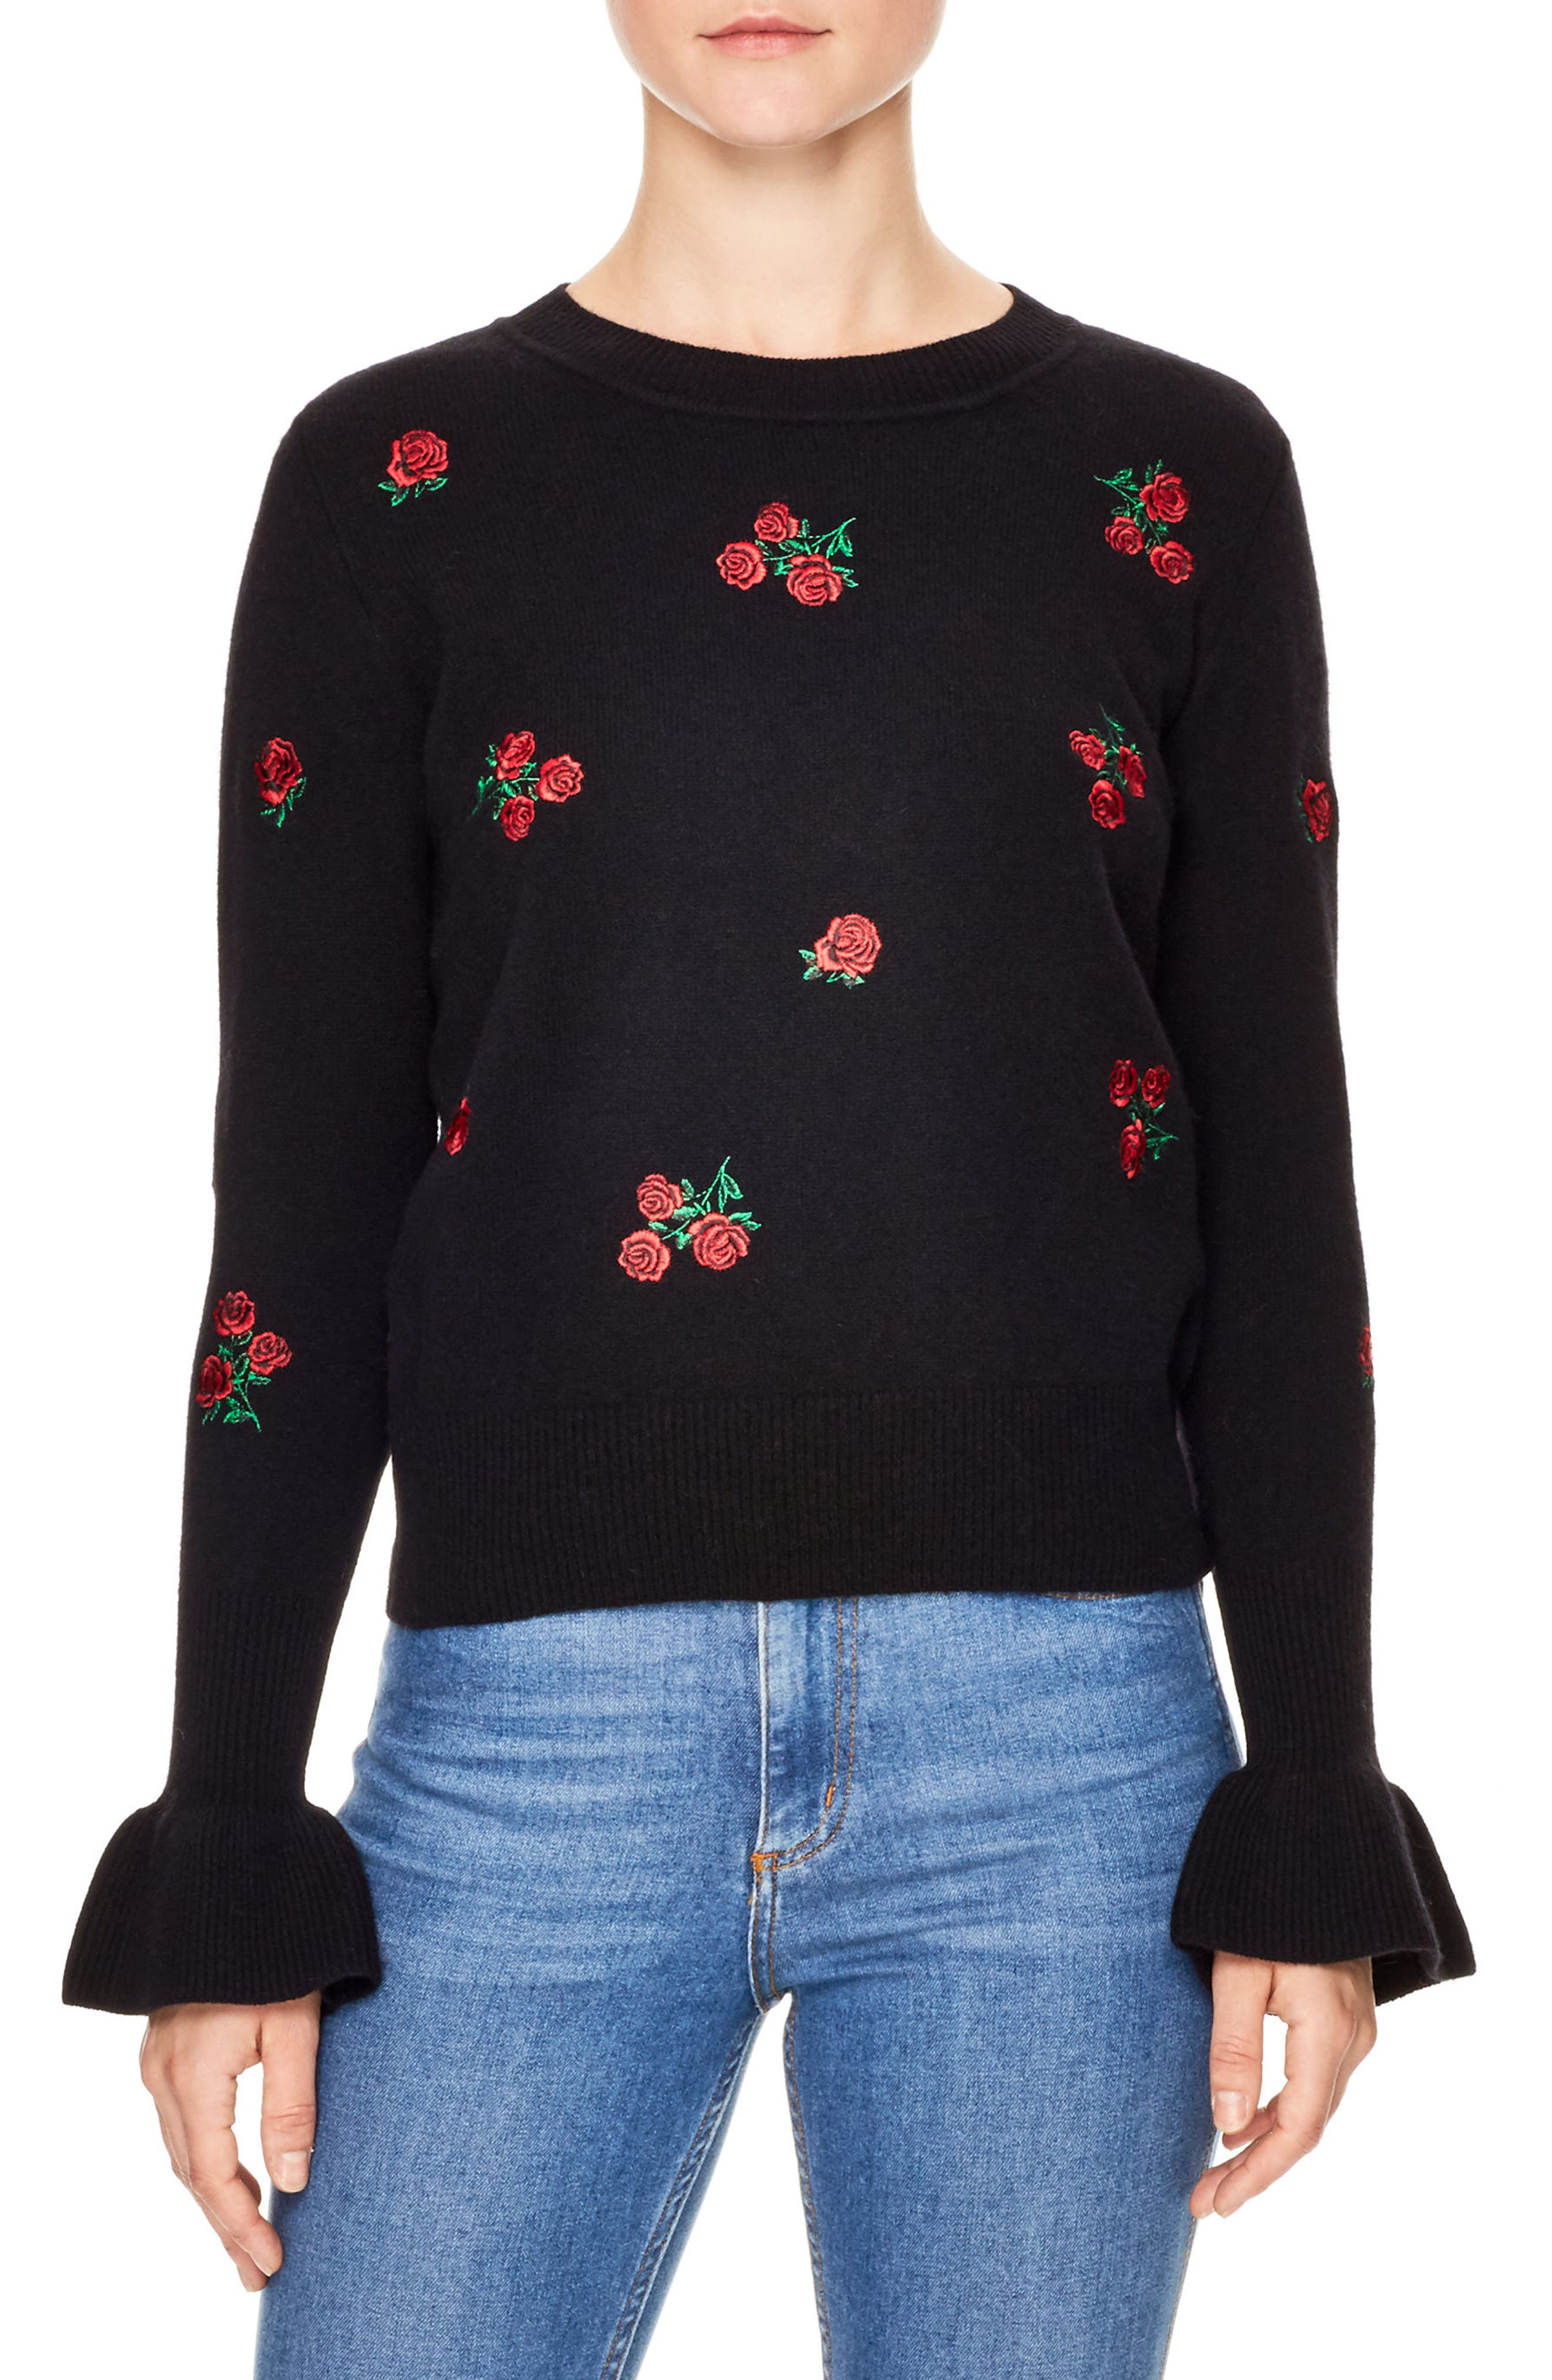 Ingrid Embroidered Wool Sweater,                             Main thumbnail 1, color,                             001